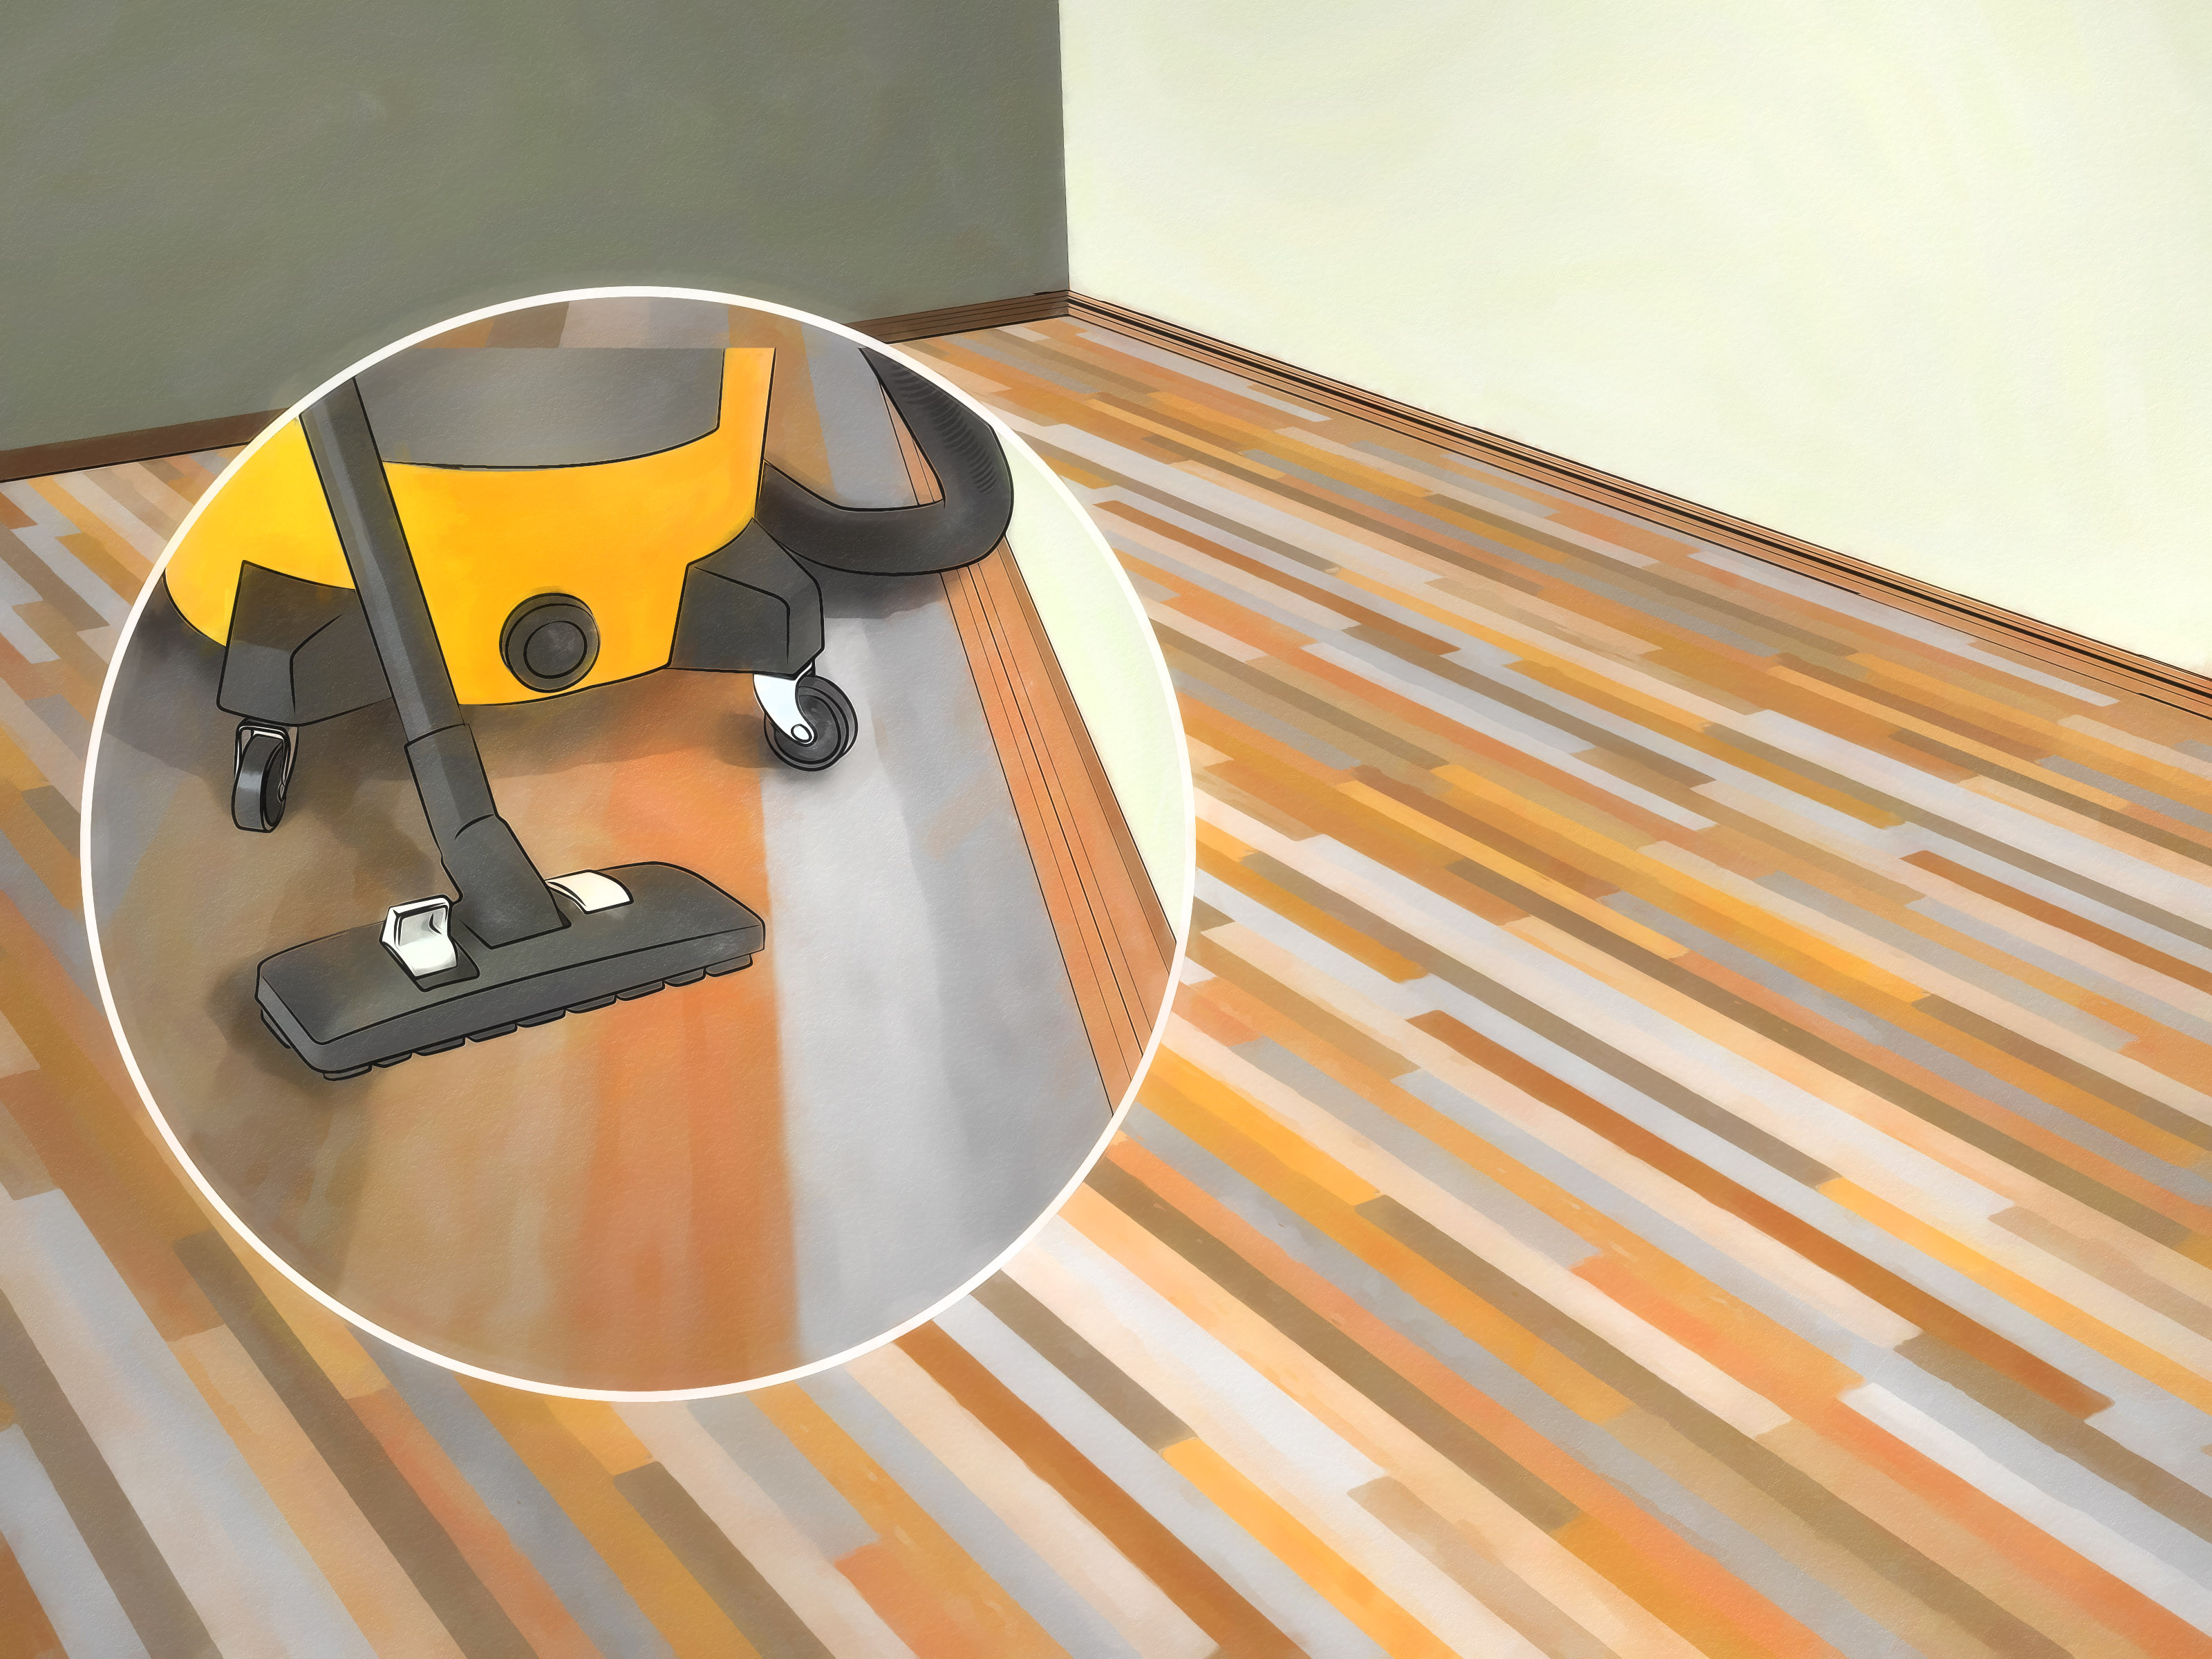 sanding hardwood floors for dummies of how to sand hardwood floors with pictures wikihow intended for sand hardwood floors step 22